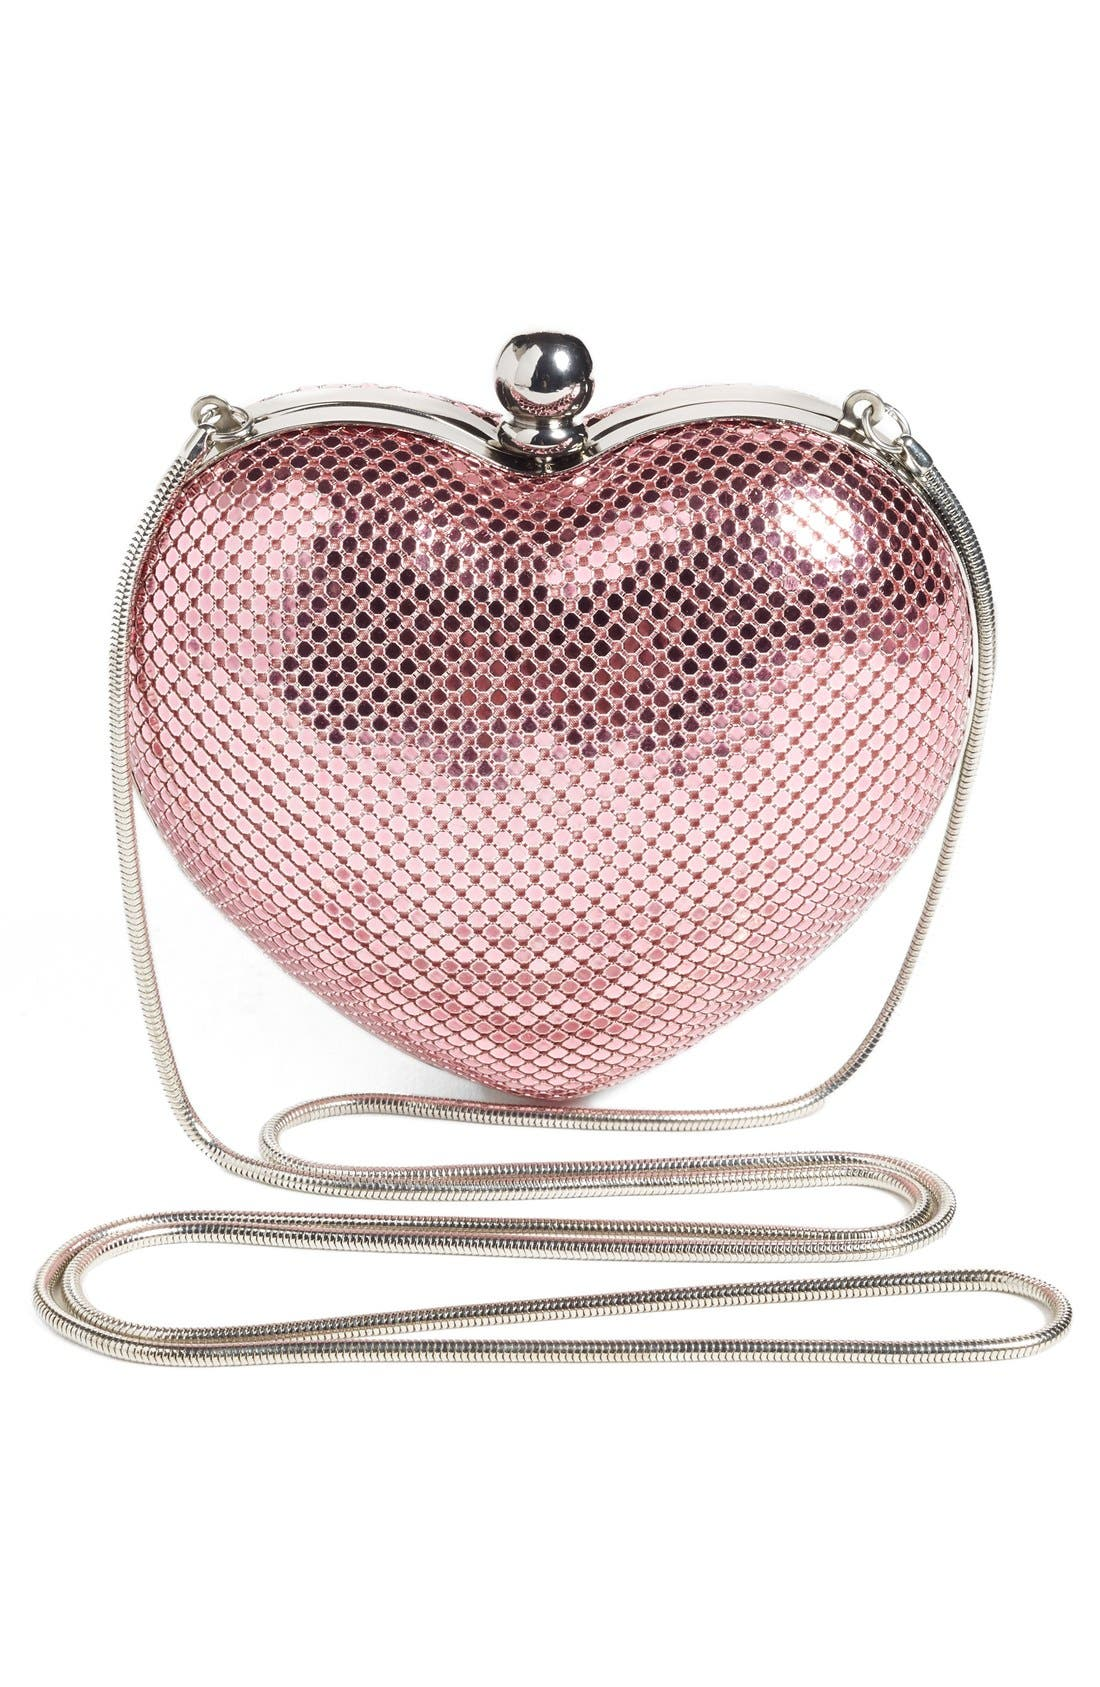 'Charity Heart' Minaudière,                             Alternate thumbnail 3, color,                             Pink